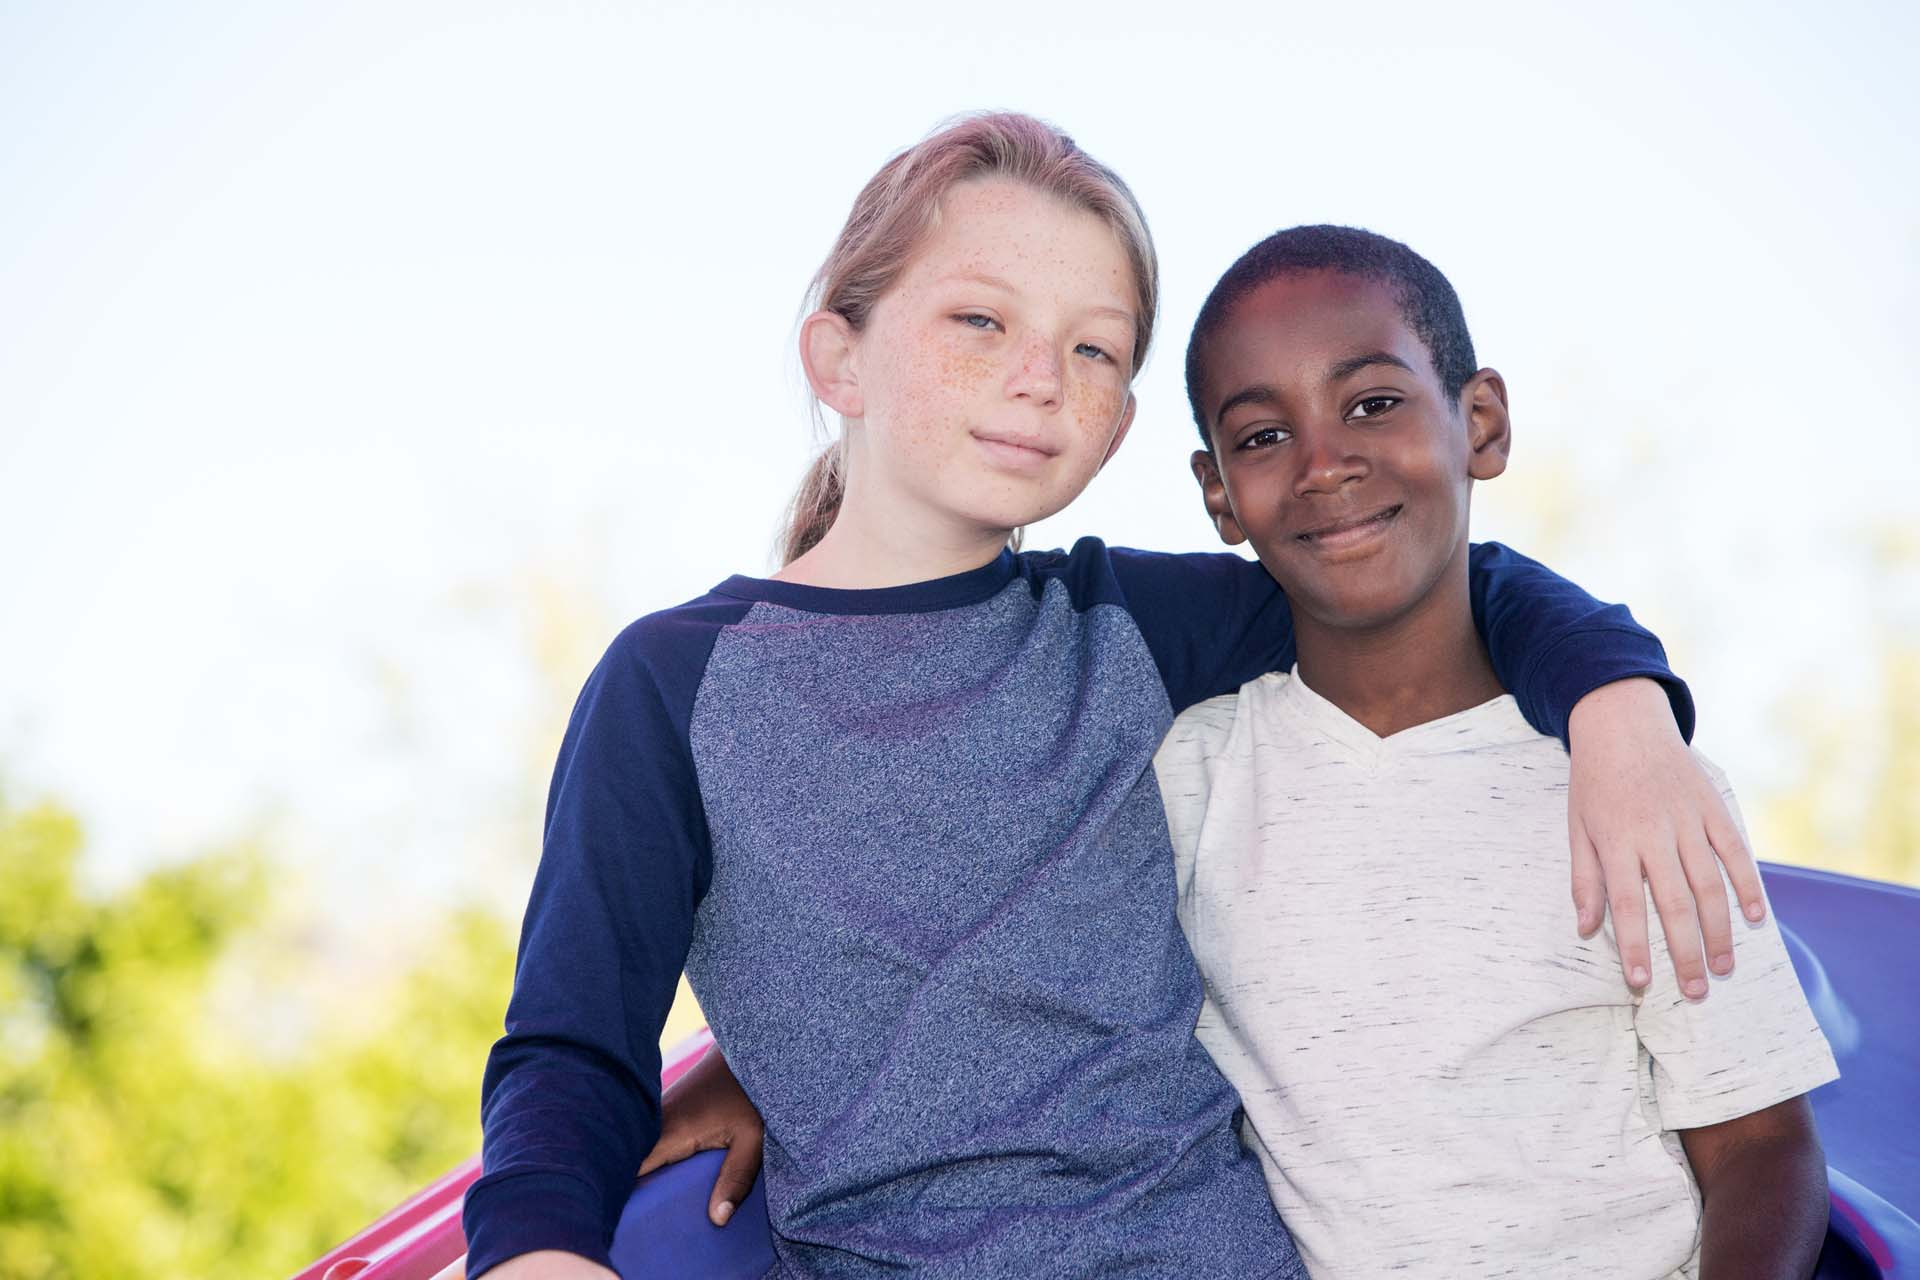 Fostering in Greater Manchester